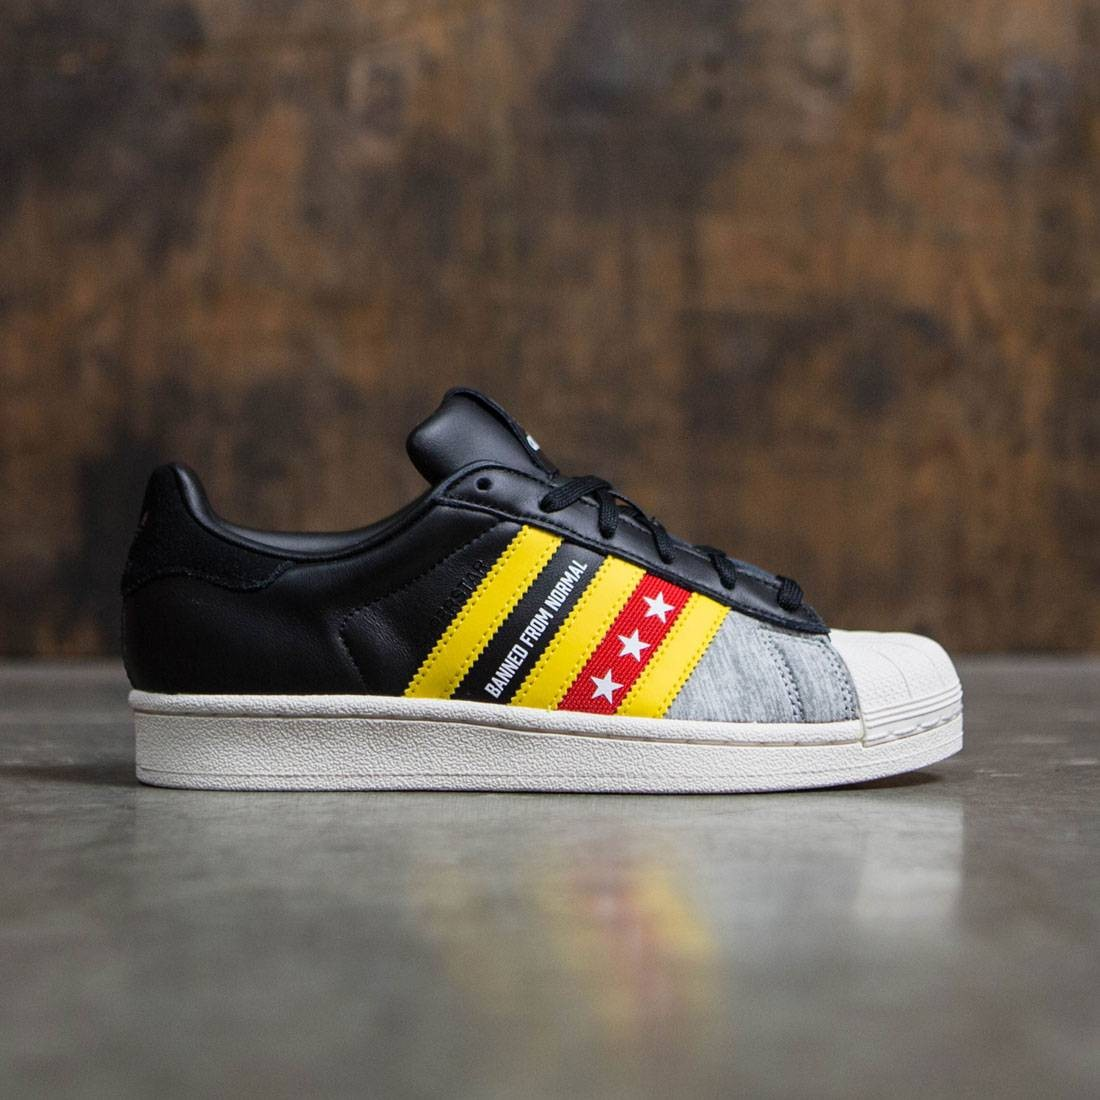 adidas Los Angeles a revamped and re released classic